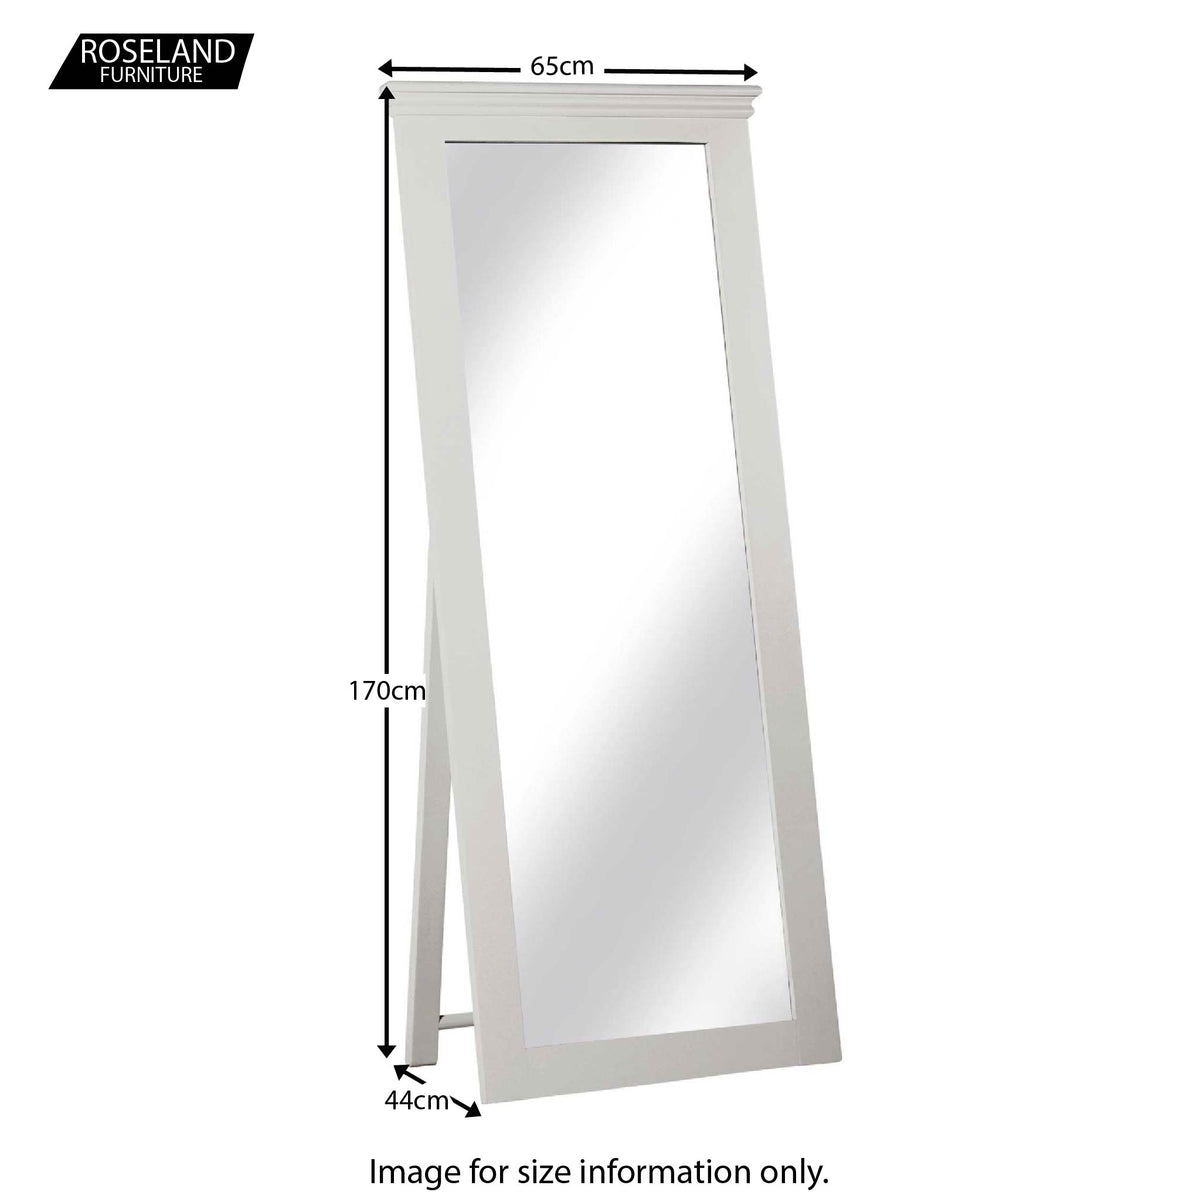 Dimensions of the Melrose Cotton White Freestanding Cheval Mirror